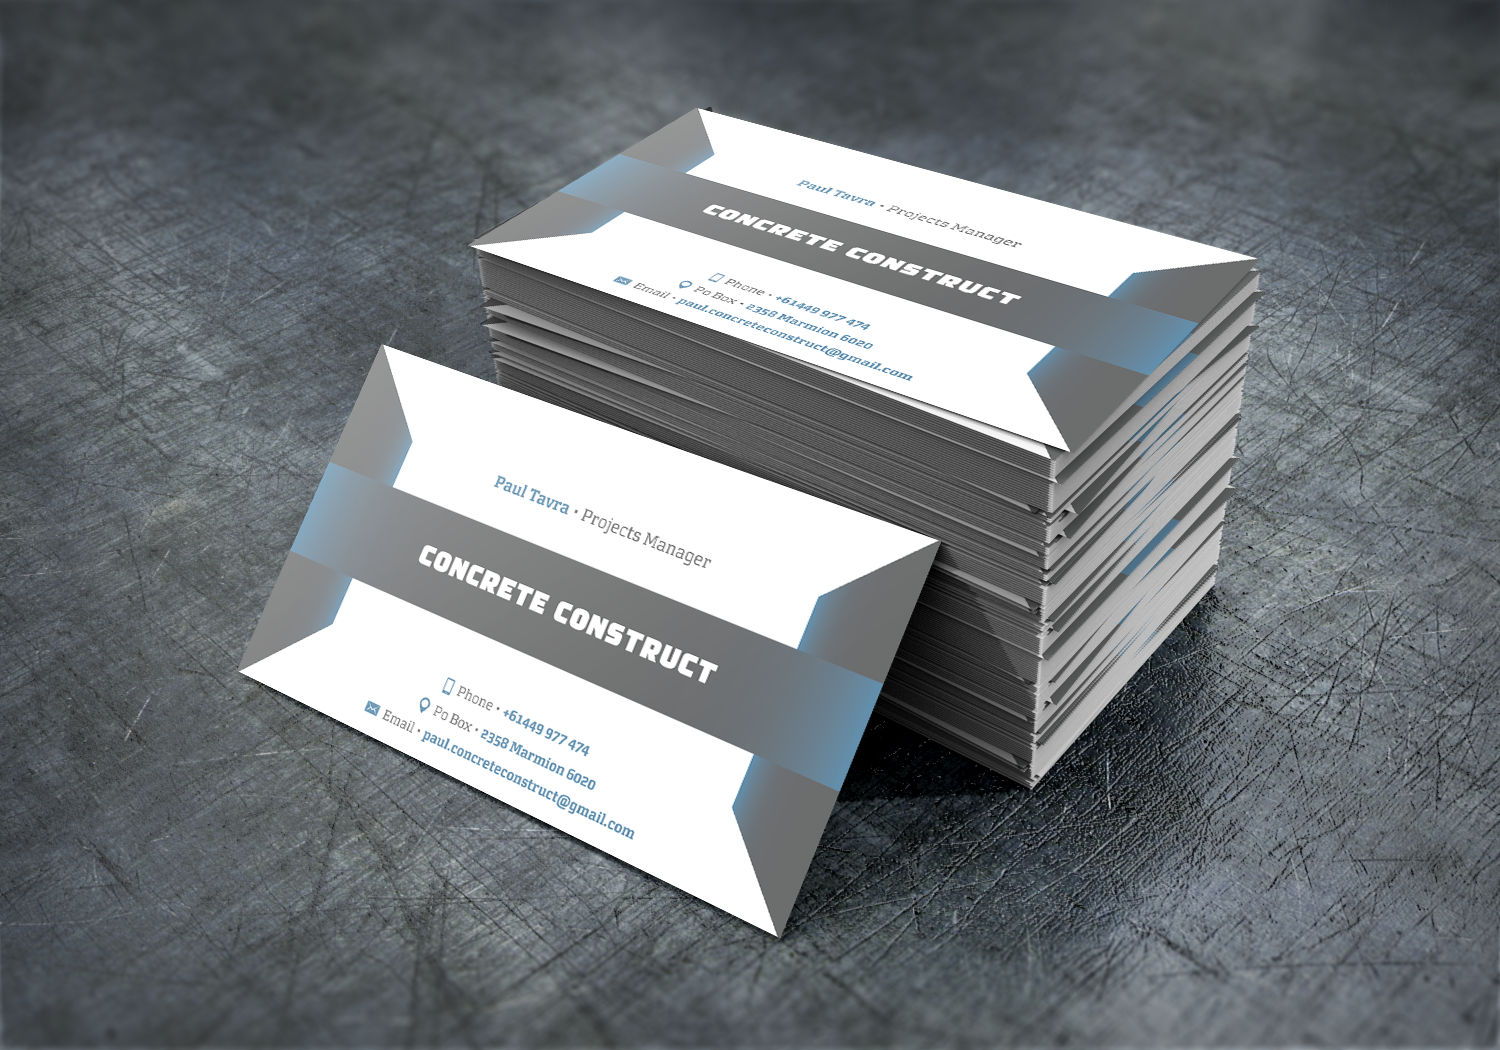 Business card design for paul tavra by tishert design 7817669 business card design by tishert for concrete construction design 7817669 magicingreecefo Image collections